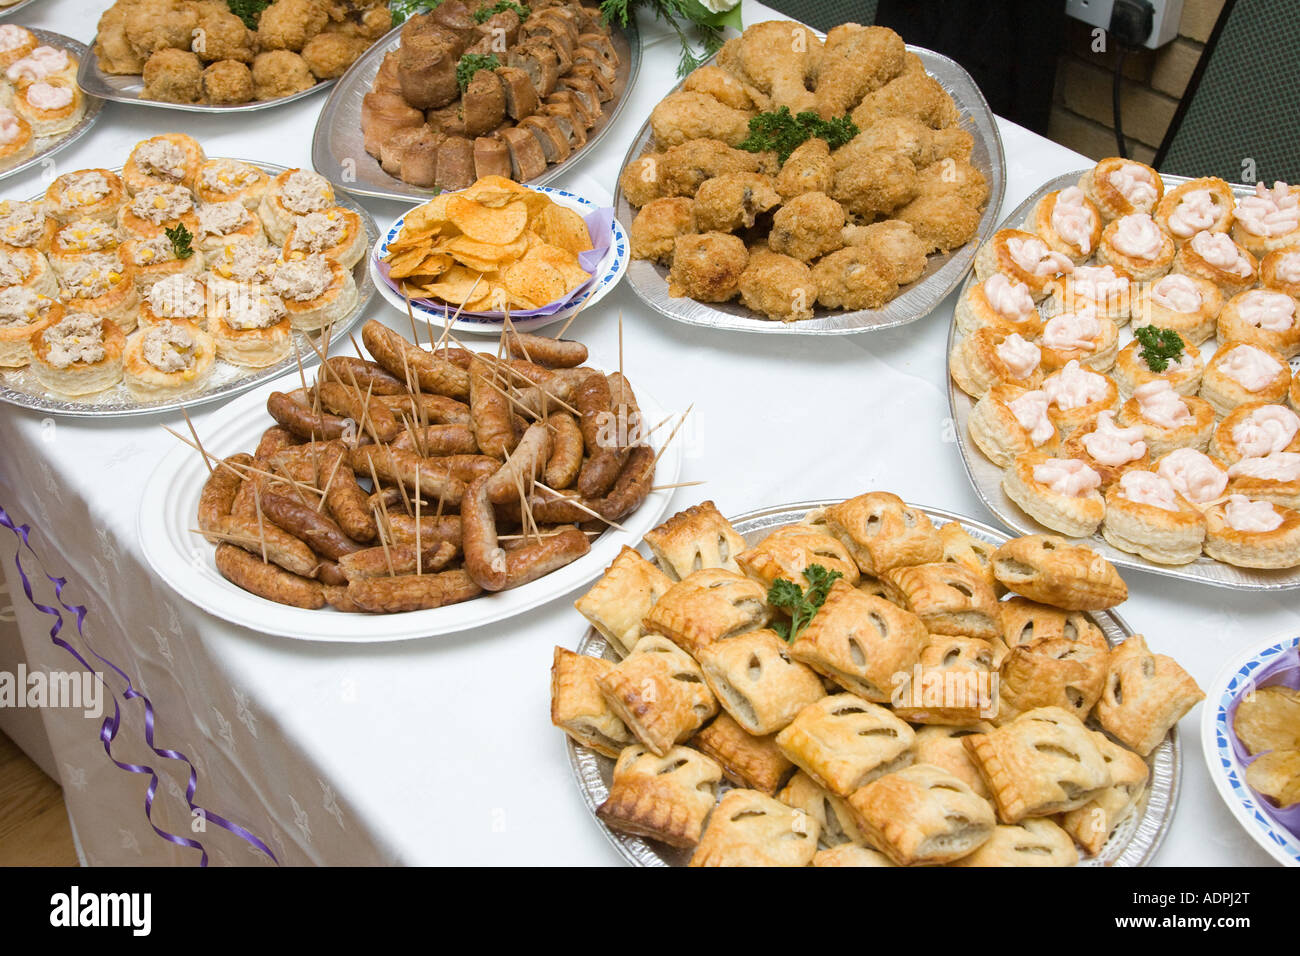 Food buffet table at a wedding reception in the uk stock for Table snack cuisine